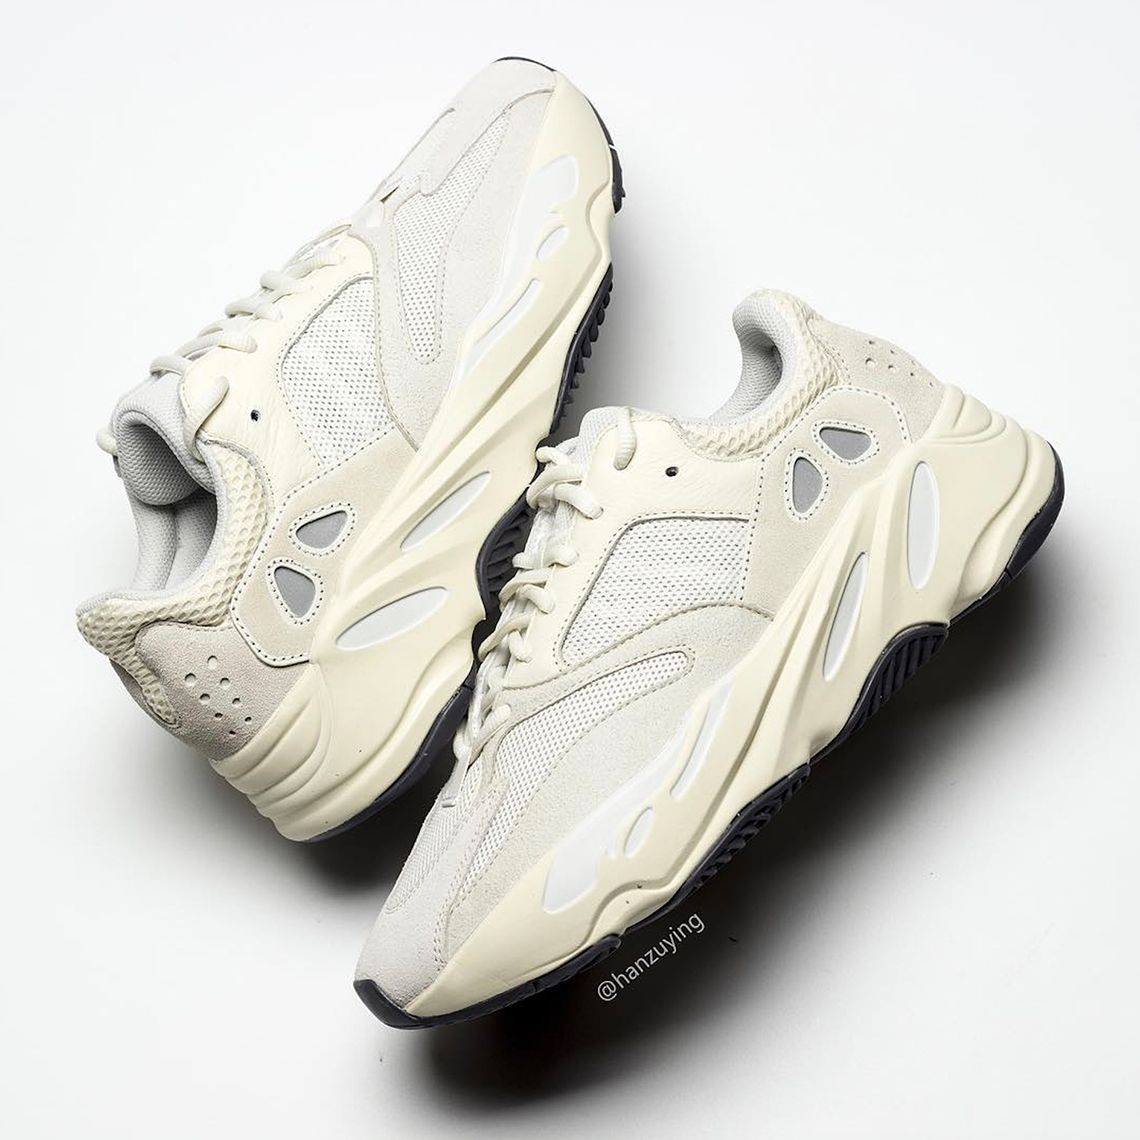 23d5550fbc809 Detailed Look At The adidas Yeezy Boost 700 Analog Yeezy Boost